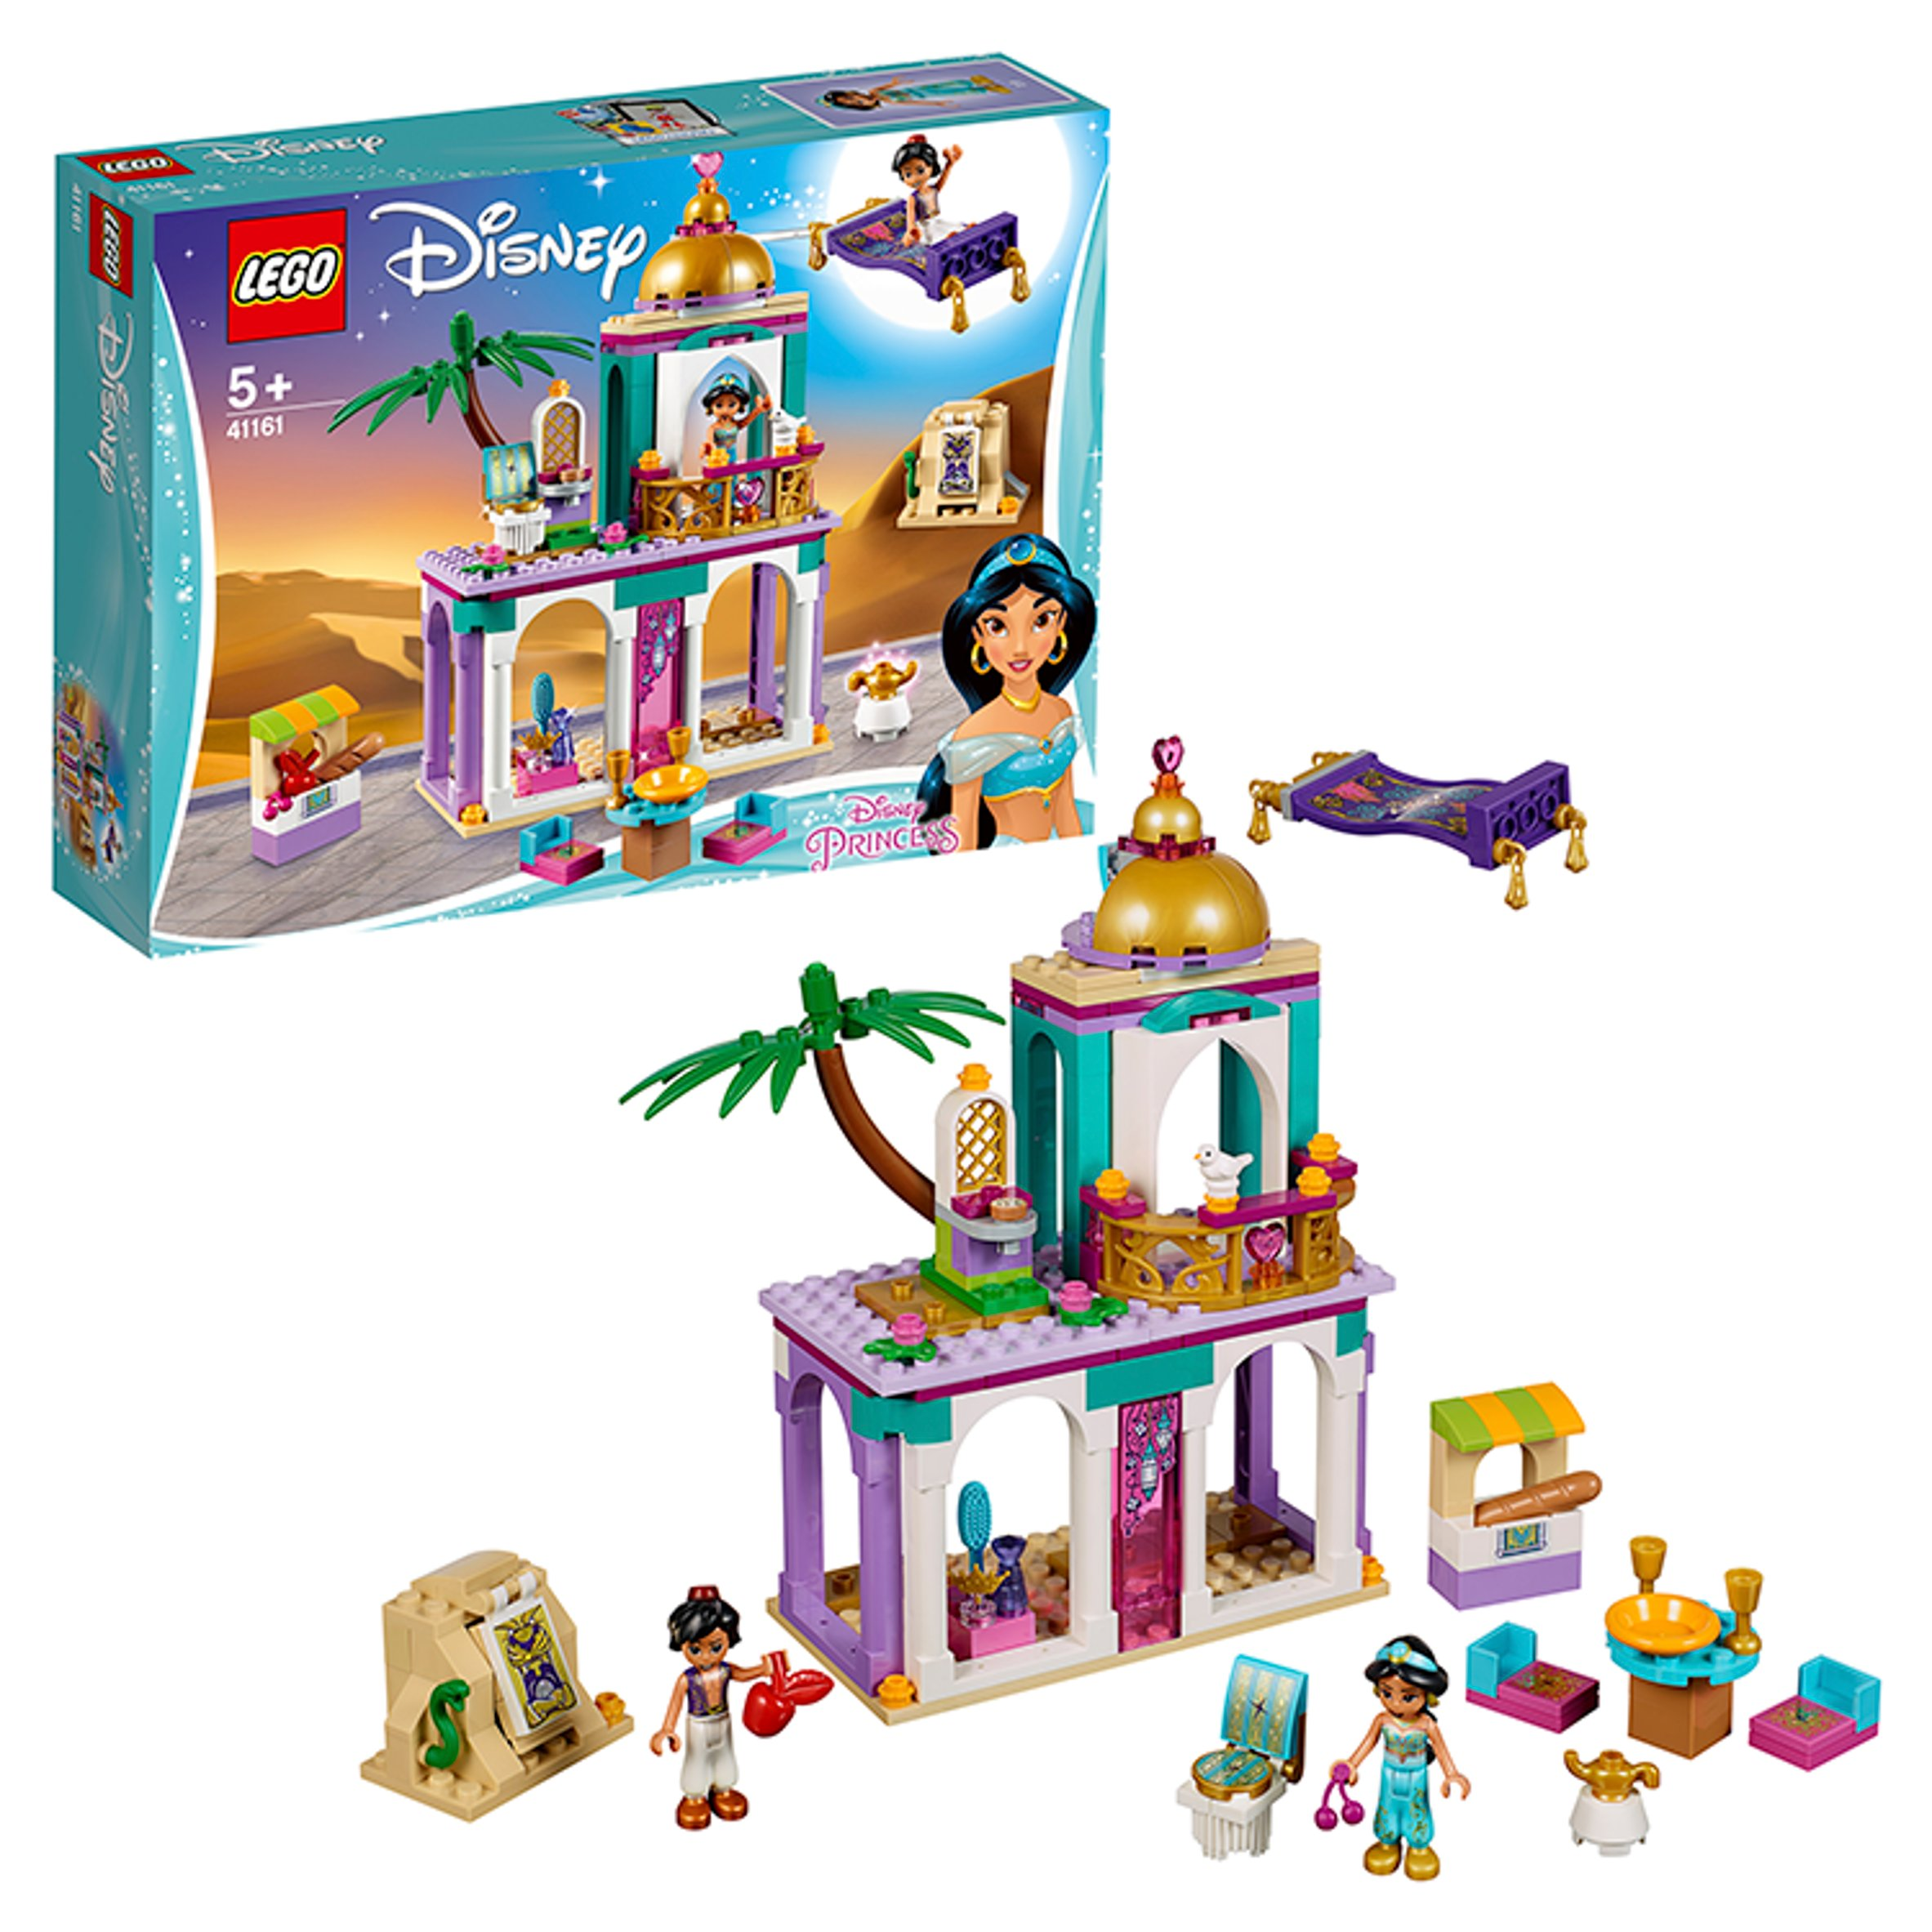 LEGO Aladdin and Jasmine/'s Palace Adventures Set 41161